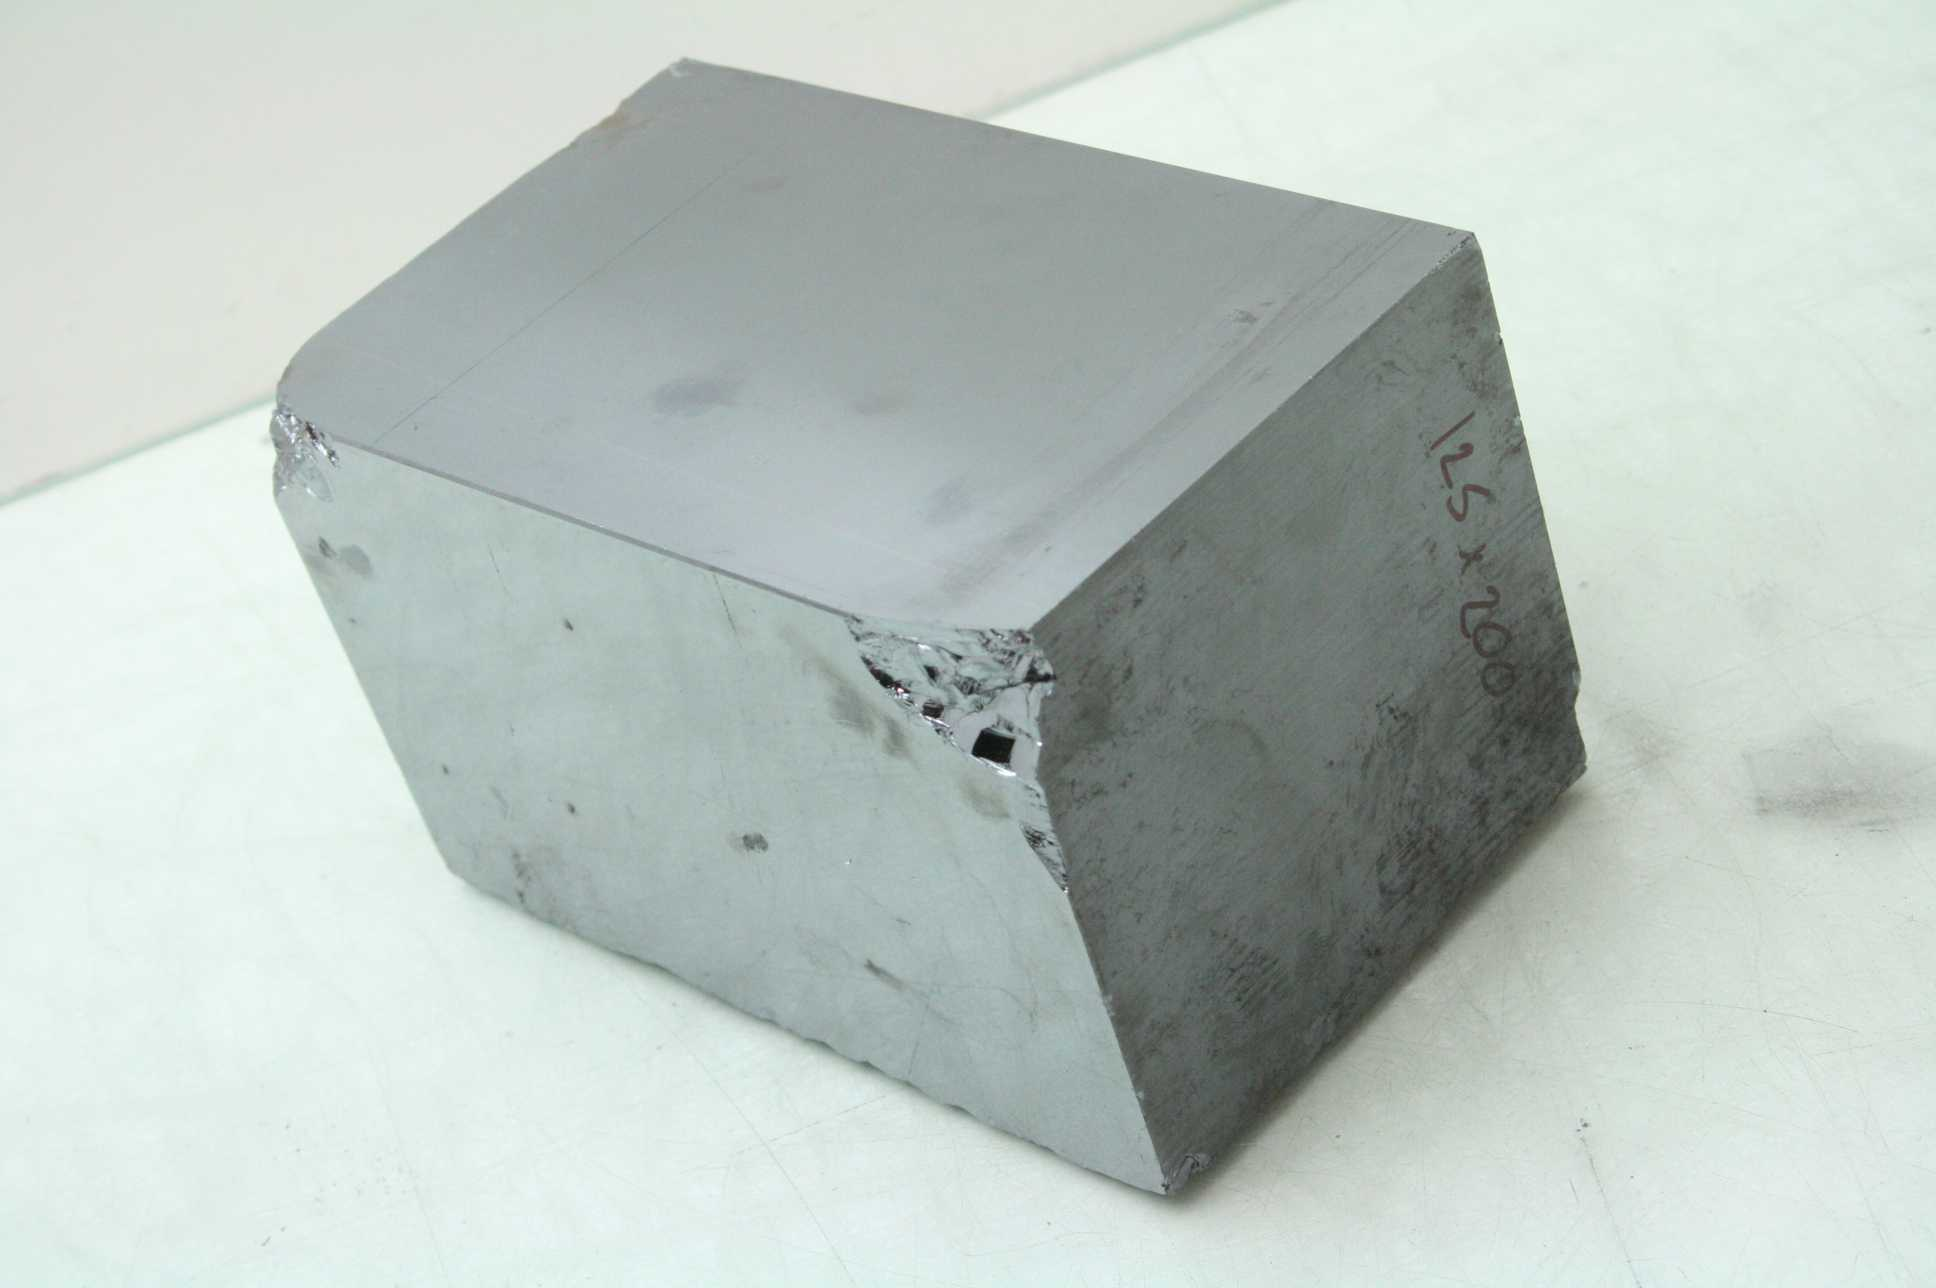 silicon block boule ingot 5 square x 8 long wire saw test sample ebay. Black Bedroom Furniture Sets. Home Design Ideas